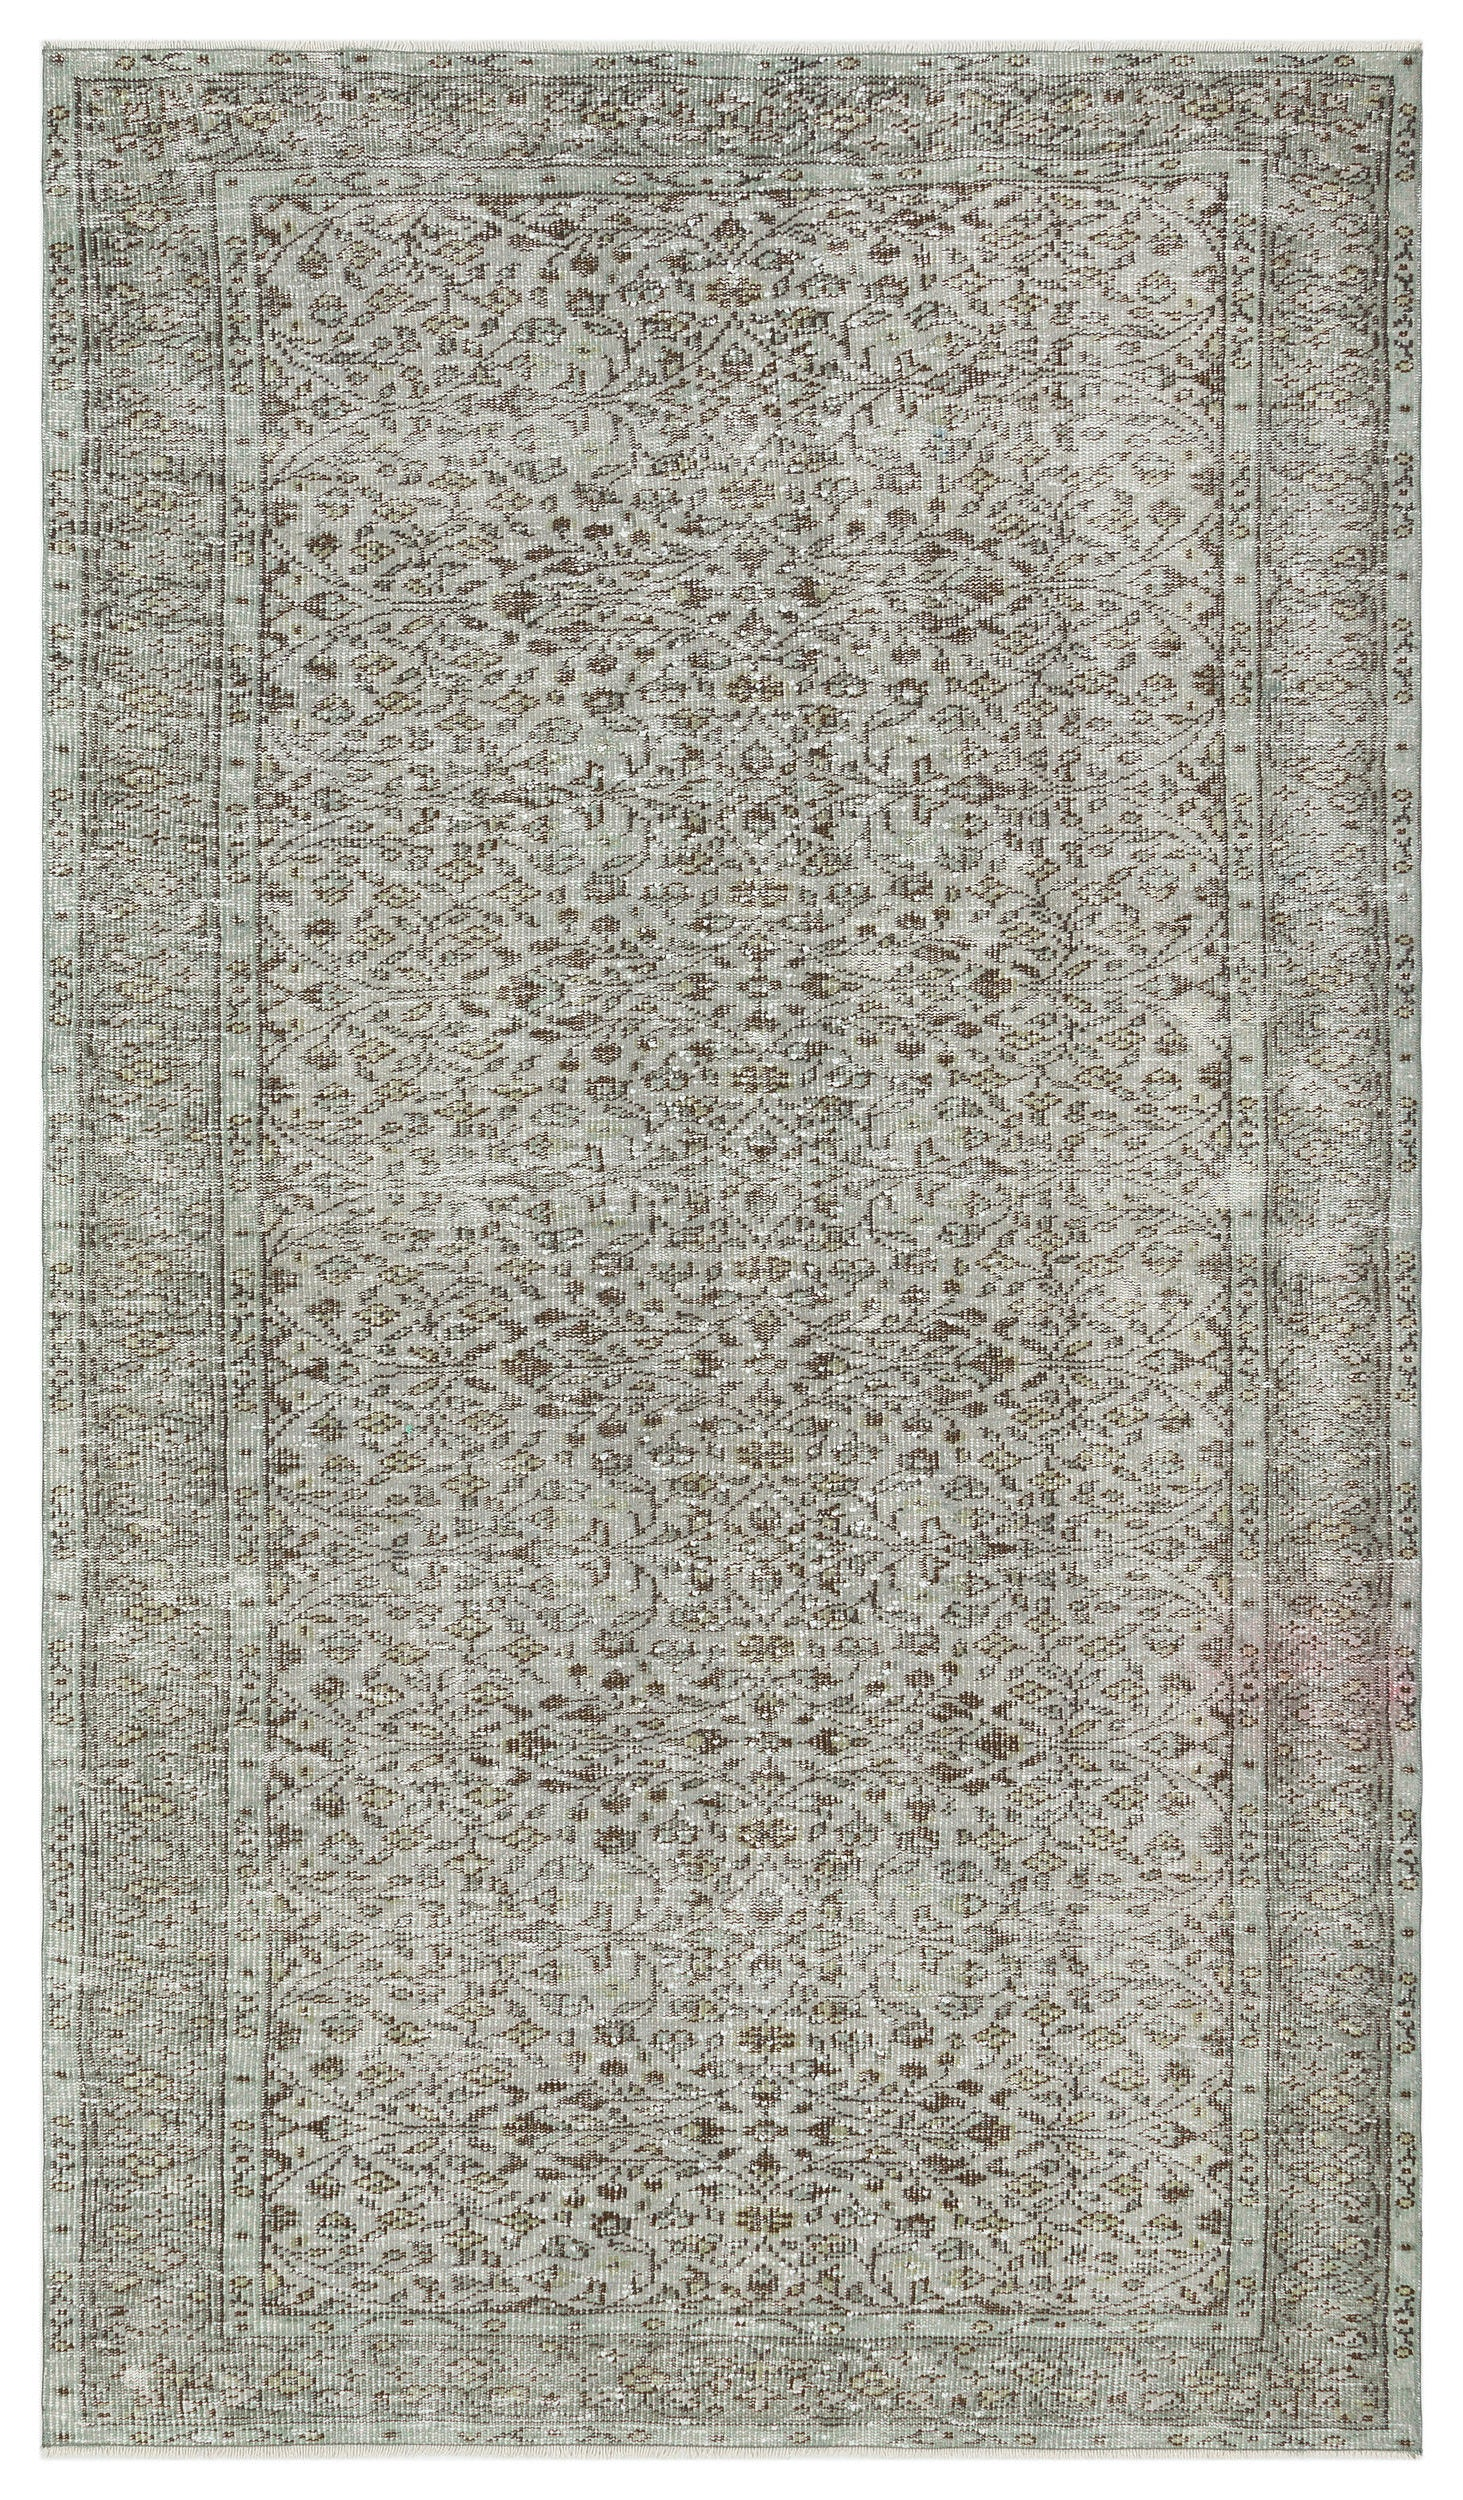 Gray Over Dyed Vintage Rug 5'1'' x 8'11'' ft 155 x 271 cm